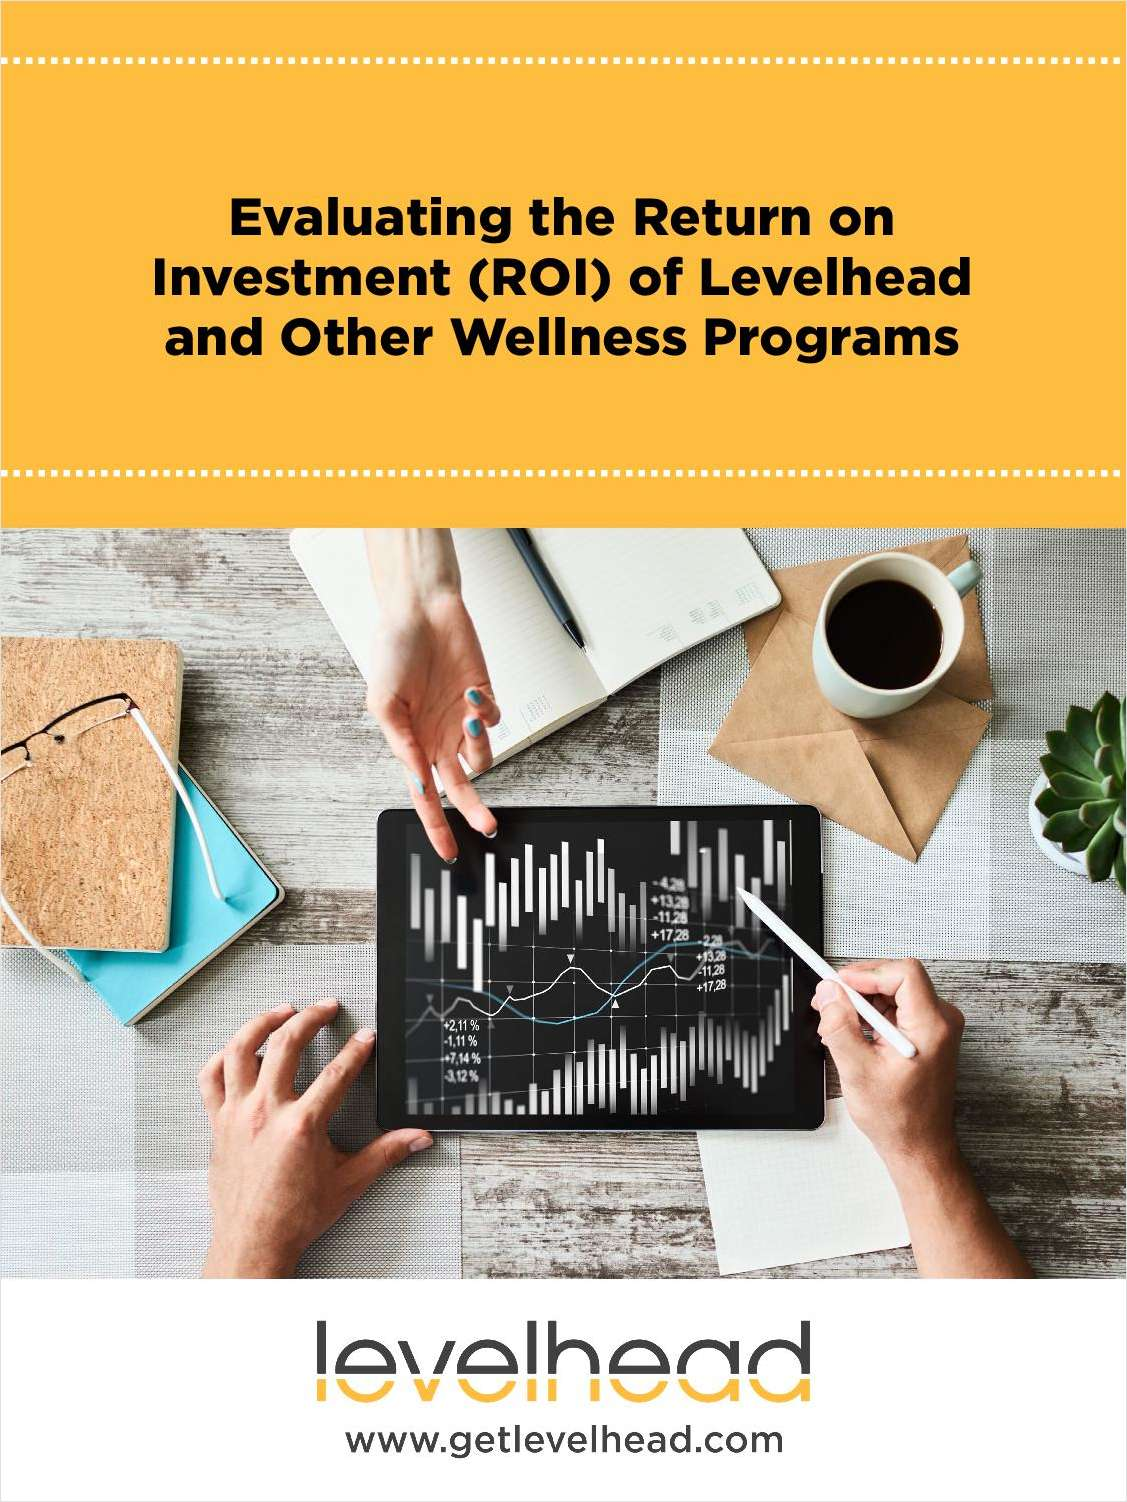 Evaluating the Return on Investment (ROI) of Wellness Programs